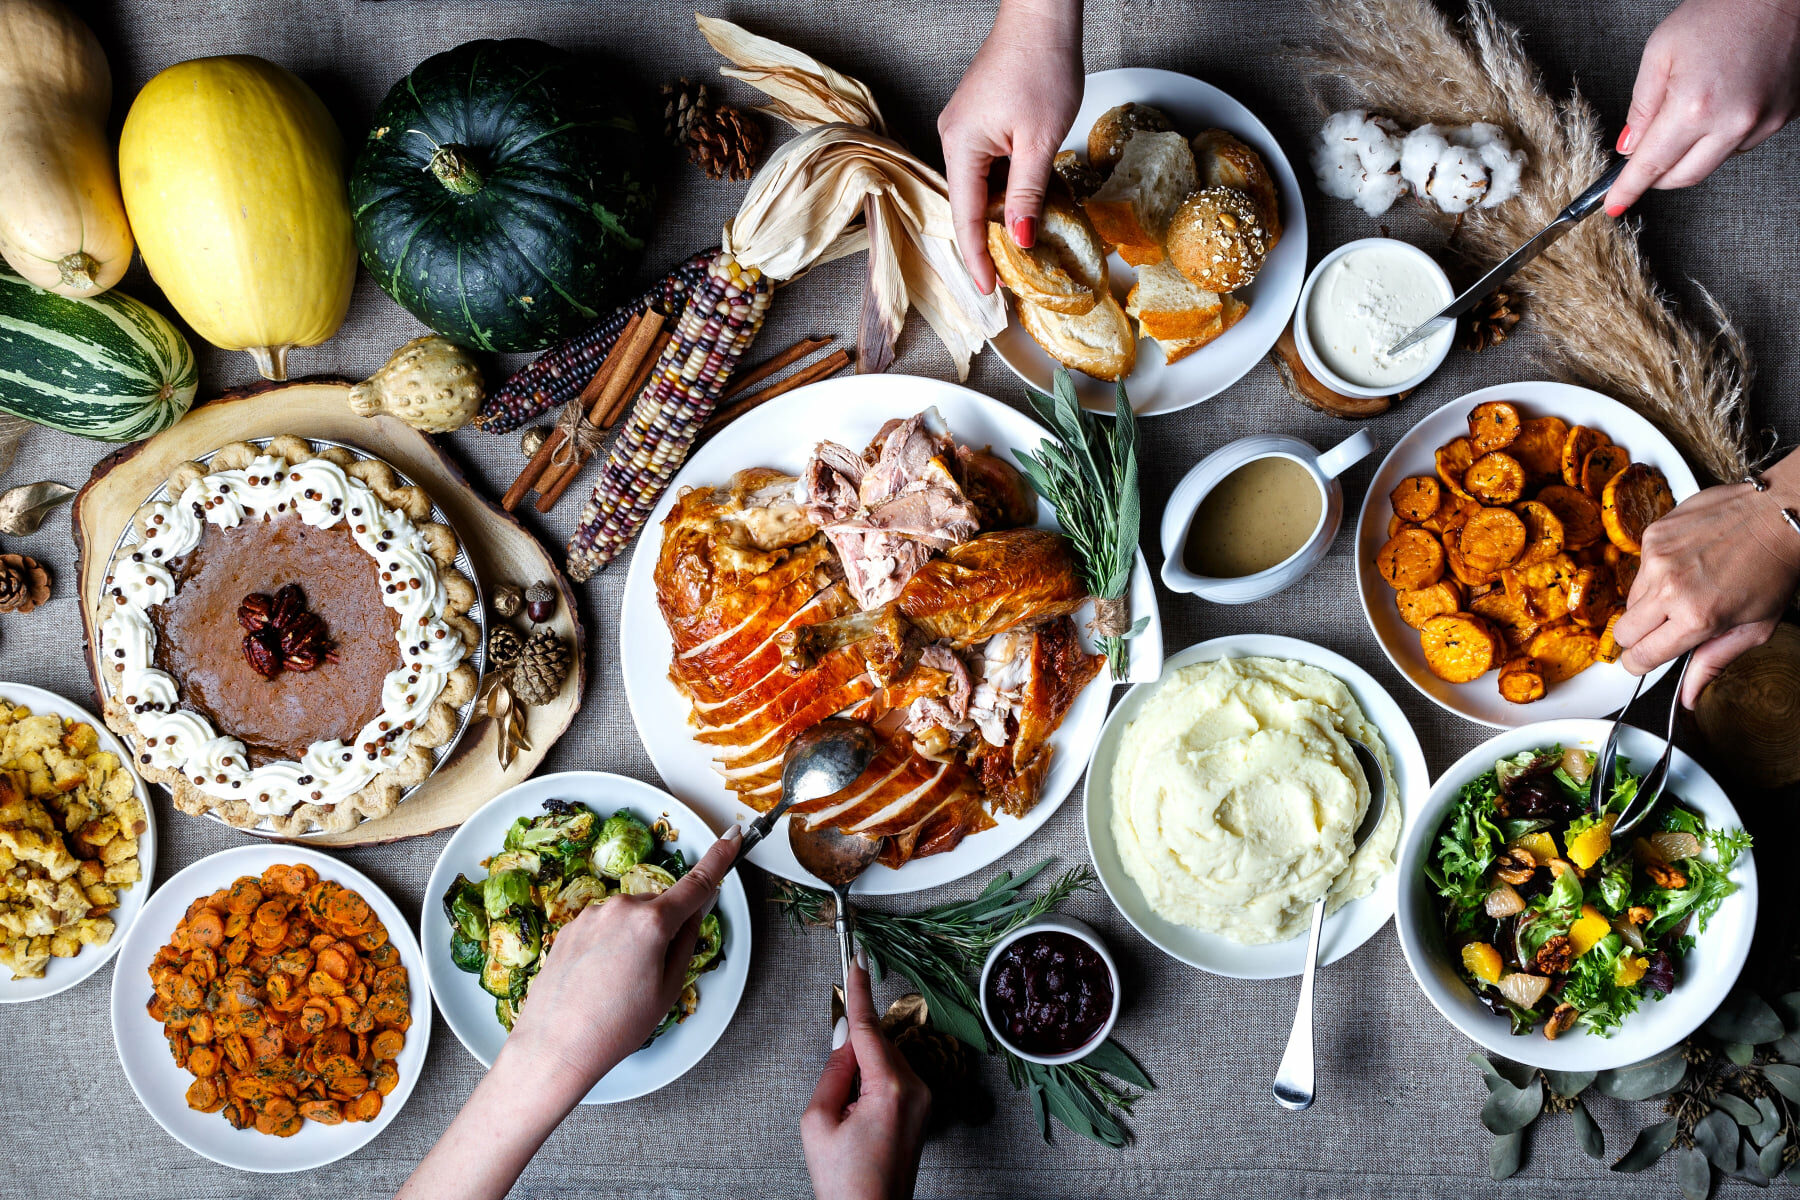 Thanksgiving feast from Railtown catering in Vancouver